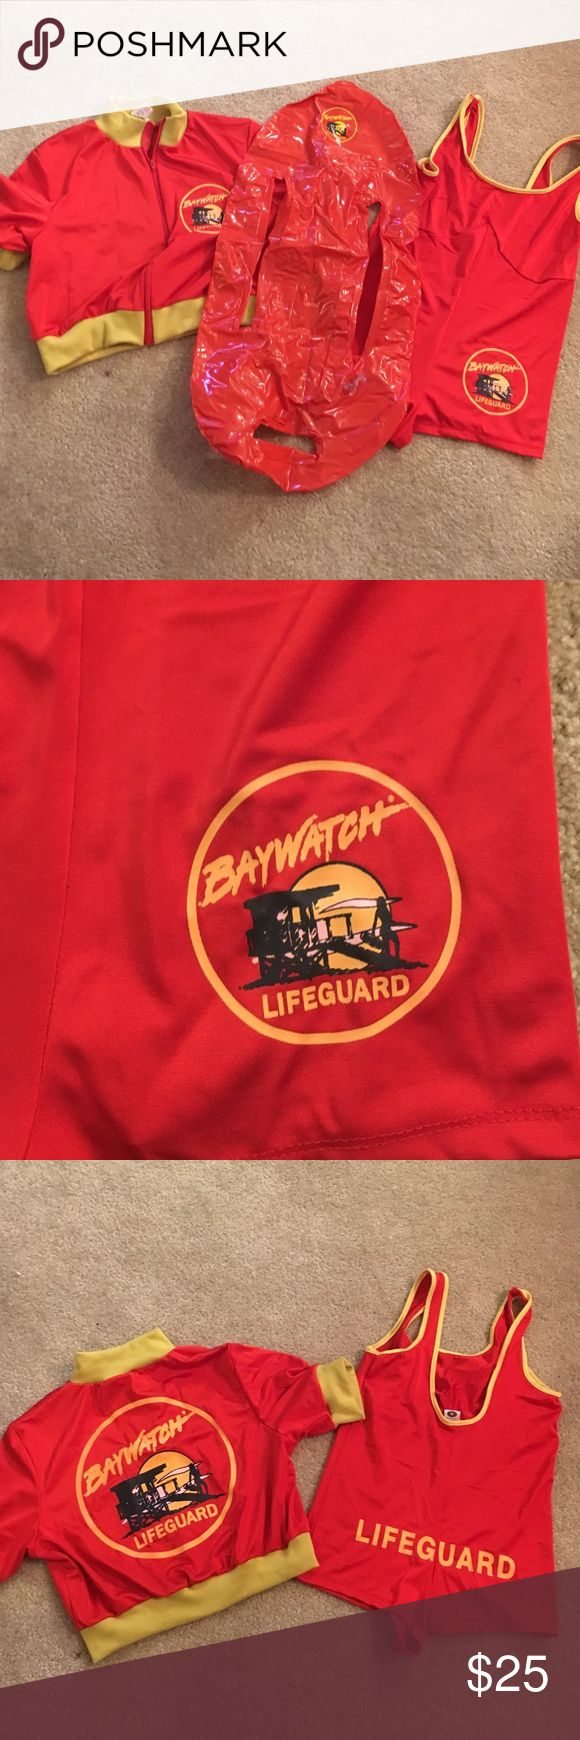 Women's size M lifeguard Halloween costume Super cute cheeky lifeguard costume. I have a funny men's costume in my closet too. Other